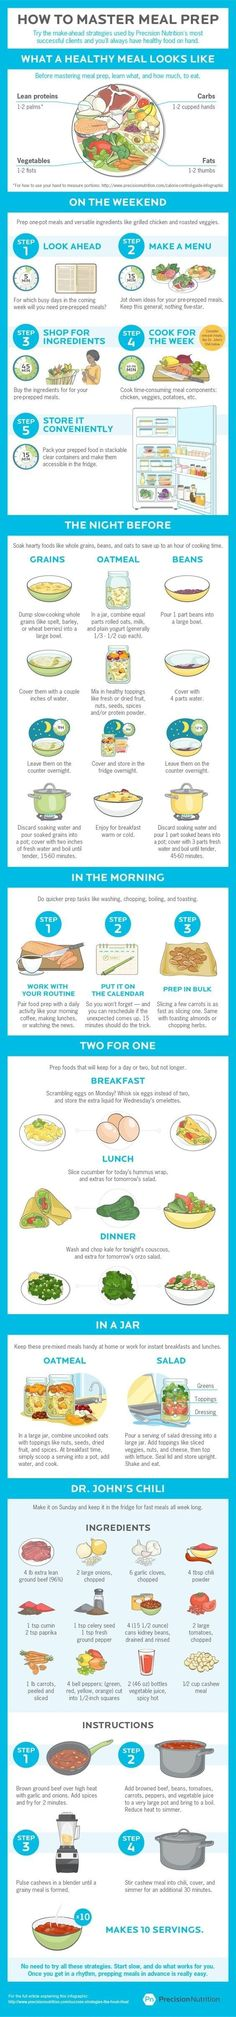 For when meal prep sounds like a great idea but you don't even know where to start.   25 Cheat Sheets That Make Cooking Healthier Less Of A Freaking Chore